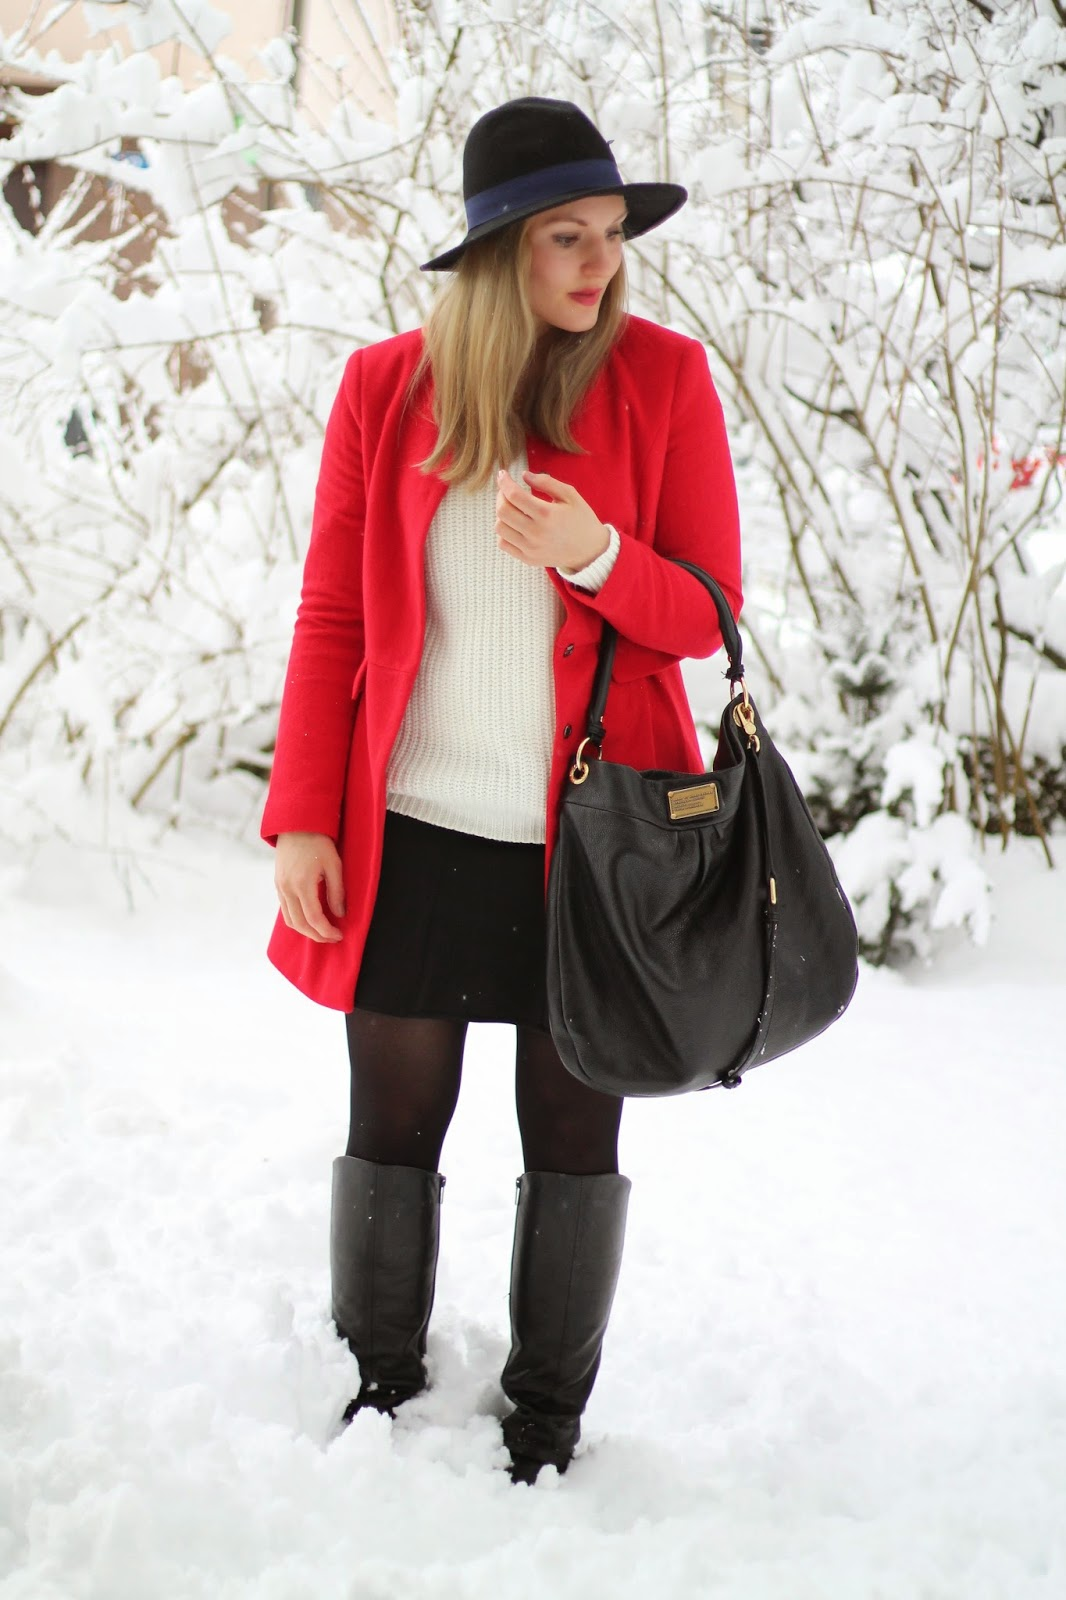 Fashionblogger Austria / Österreich / Deutsch / German / Kärnten / Carinthia / Klagenfurt / Köttmannsdorf / Winter Look / Classy / Edgy / Winter / WInter Style 2014 / Winter Look / Fashionista Look / Streetstyle Klagenfurt Vienna Wien Austria / /Winter Outfit / Red Coat Roter Mantel Oasap / Hat Hut Forever 21 Black Schwarz Blue Blau / White Sweater Knitted Weißer Strickpullover Tally Weijl / Skater Skirt Minirock Schwarz Black New Yorker / Stiefel Boots Black Schwarz Humanic / Marc by Marc Jacobs Hillier Hobo Bag mit goldener Hardware with golden Hardware / Heart Necklace Herzkette Asos /